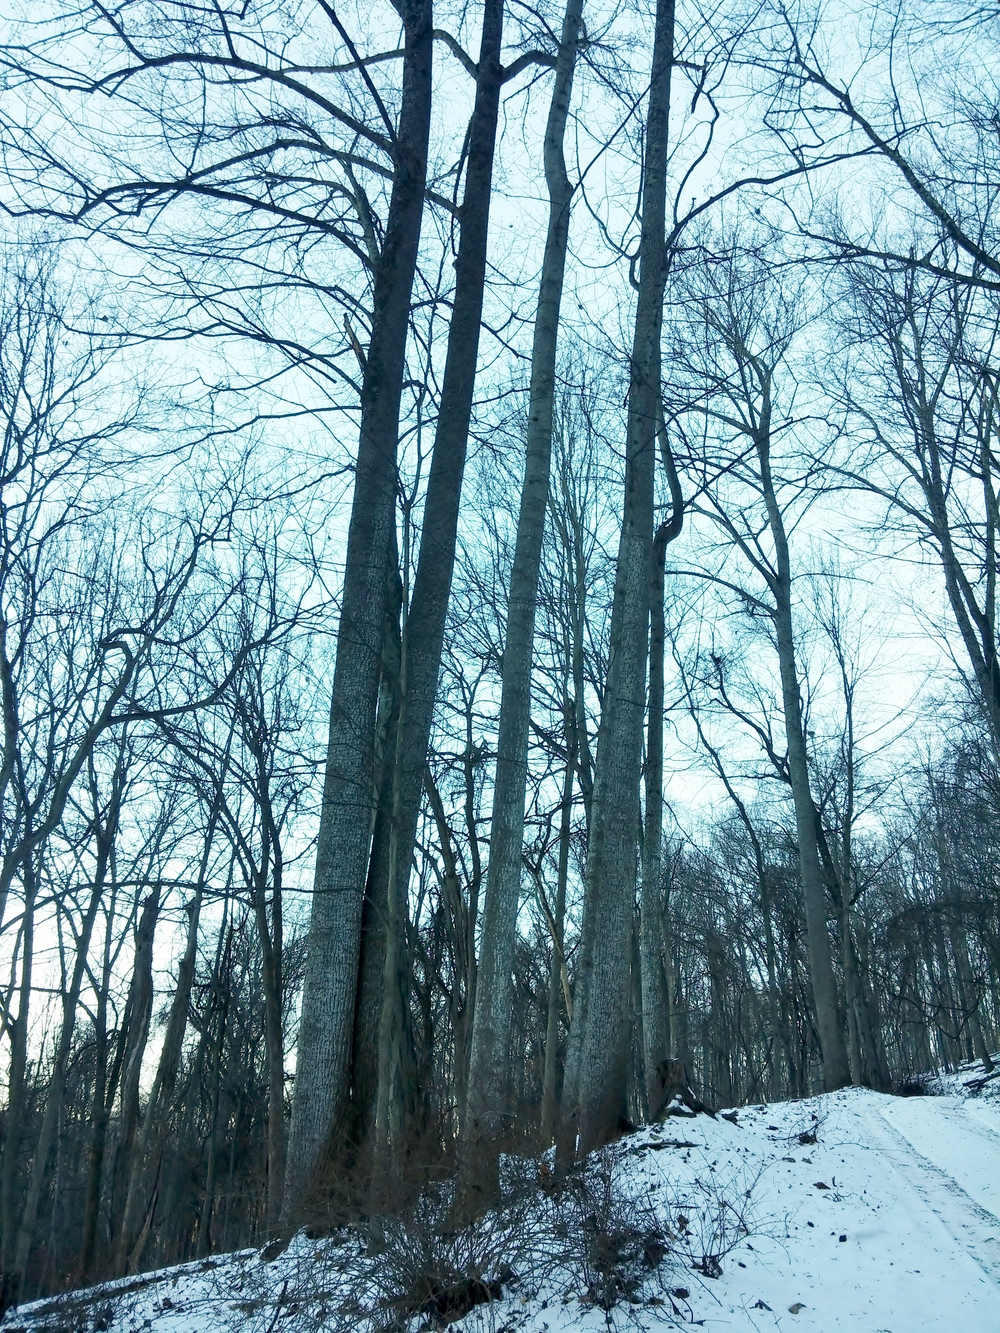 photo essay a walk in the winter woods conservancy bark twigs and overall shape provide clues to the type of tree you are